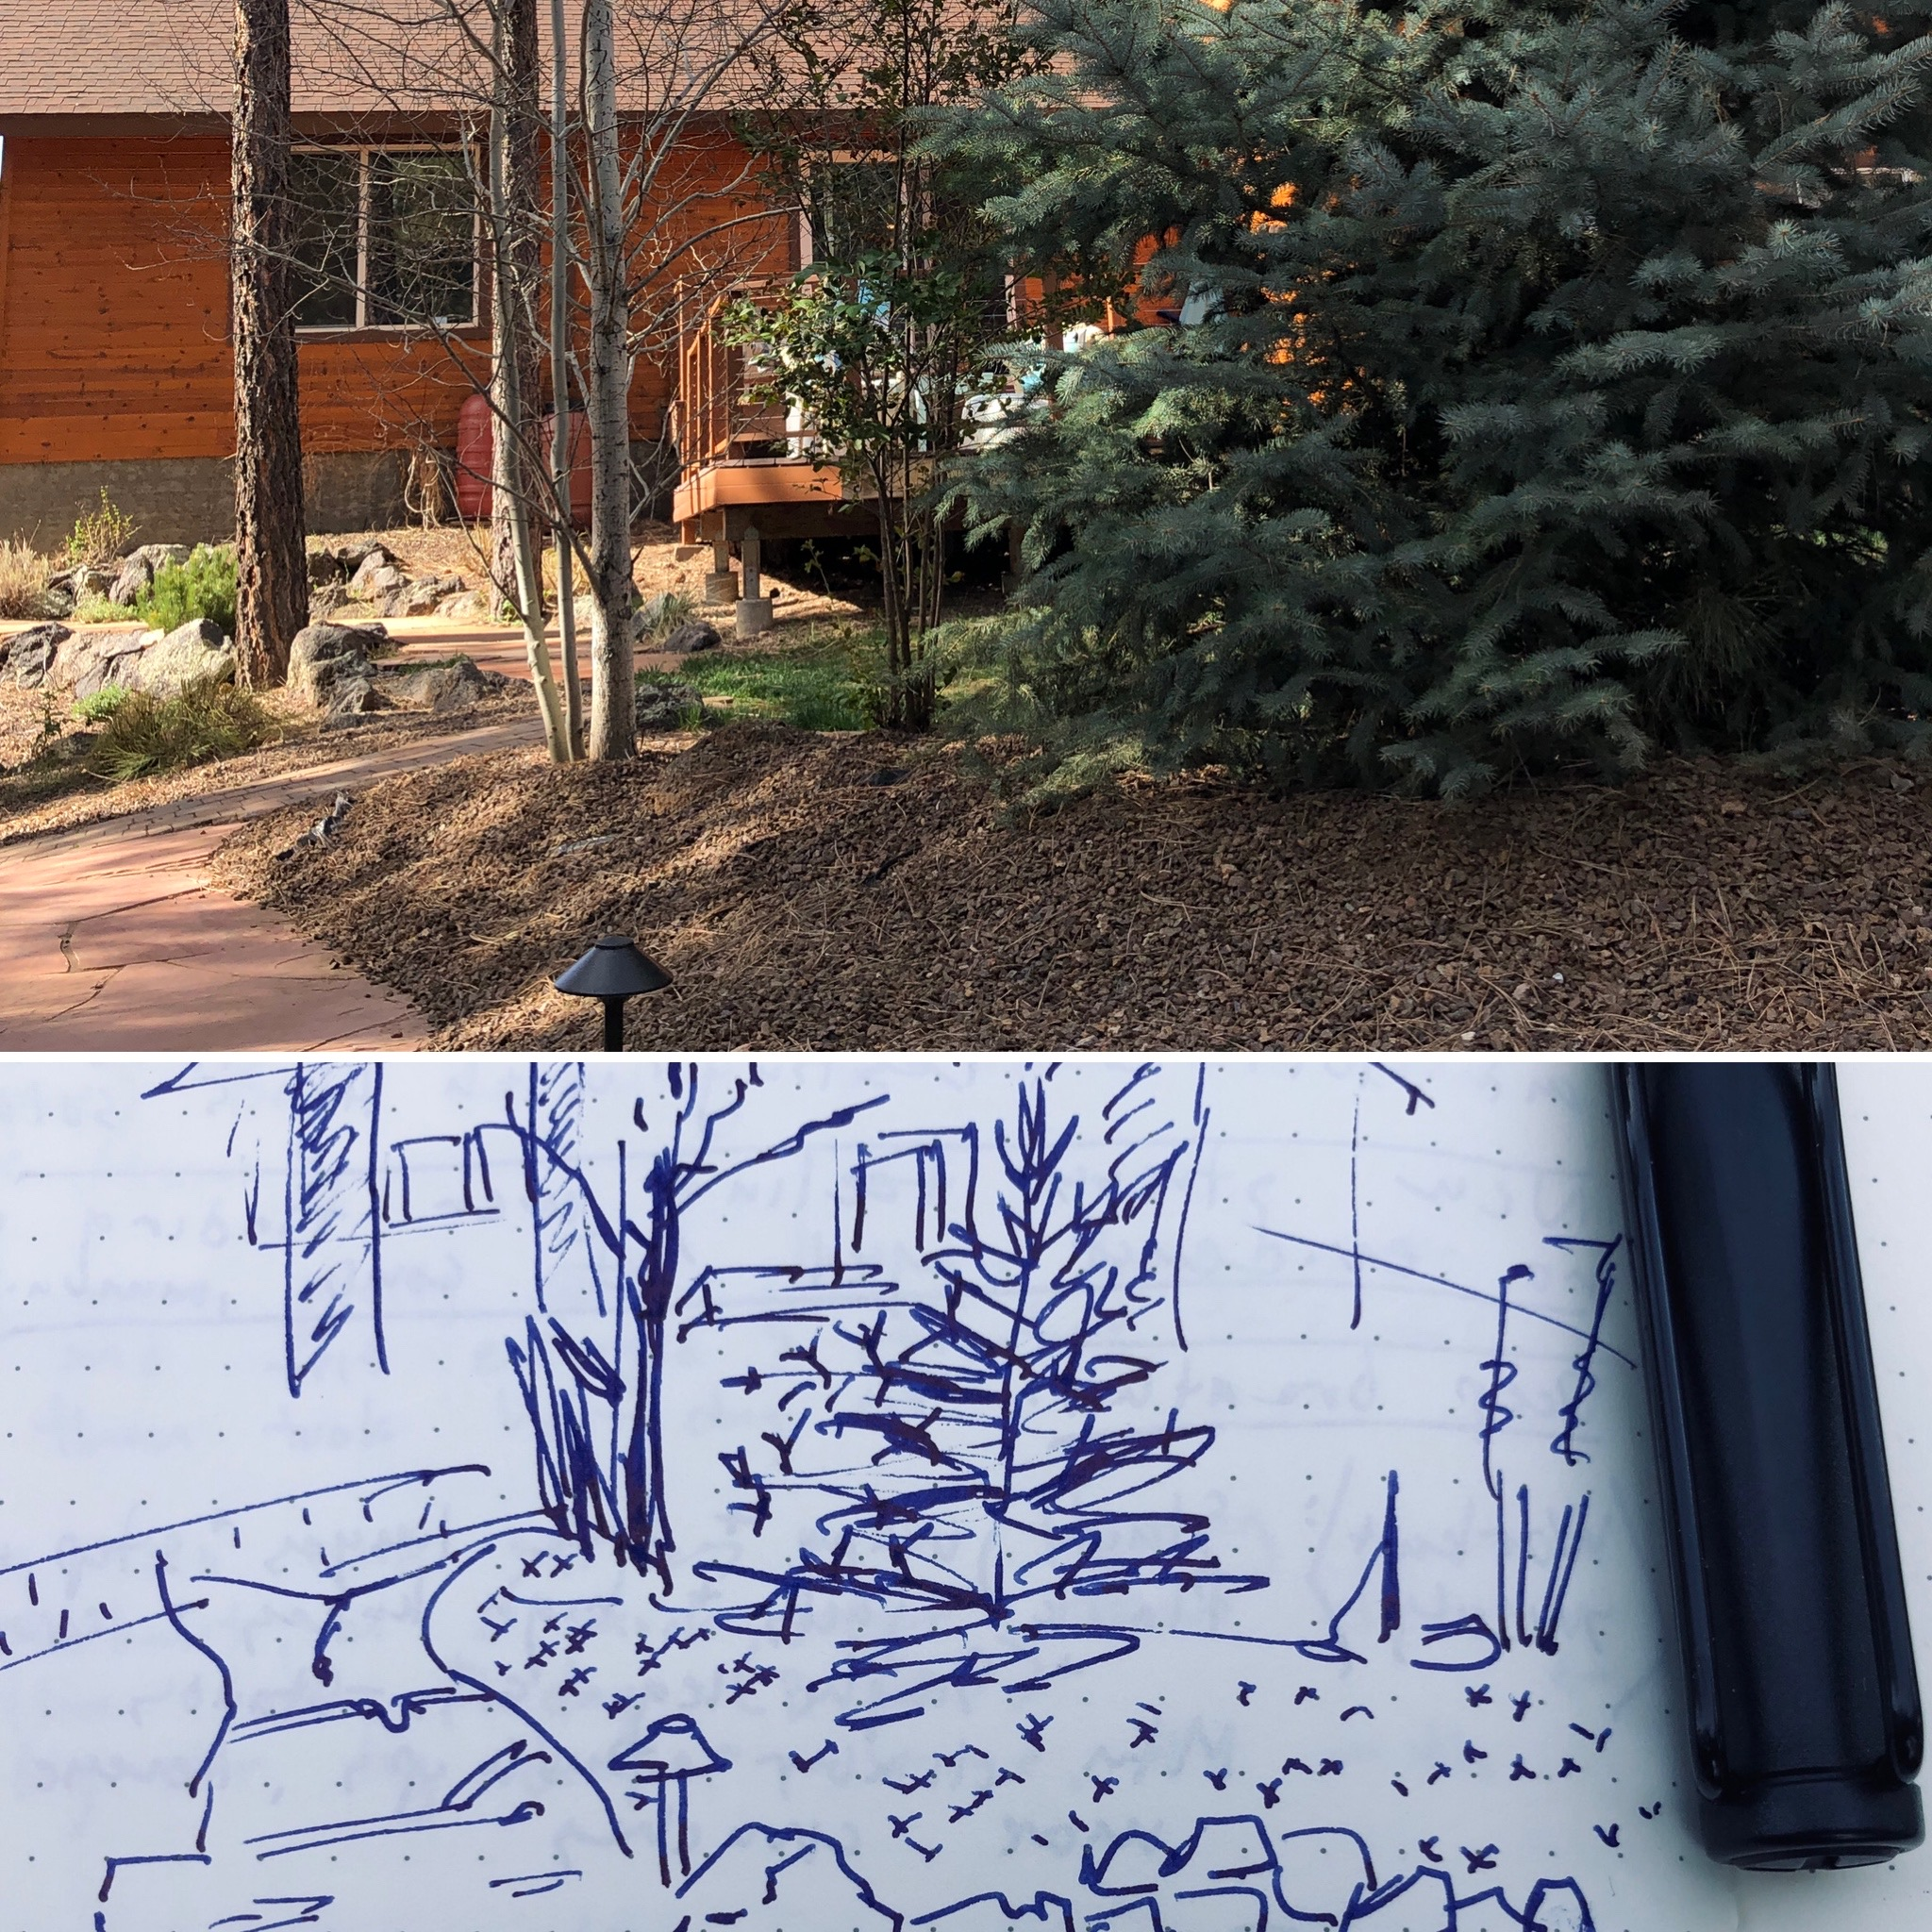 Photo of a small patio, pine tree and house beyond, with a sketch of the same view below jt.